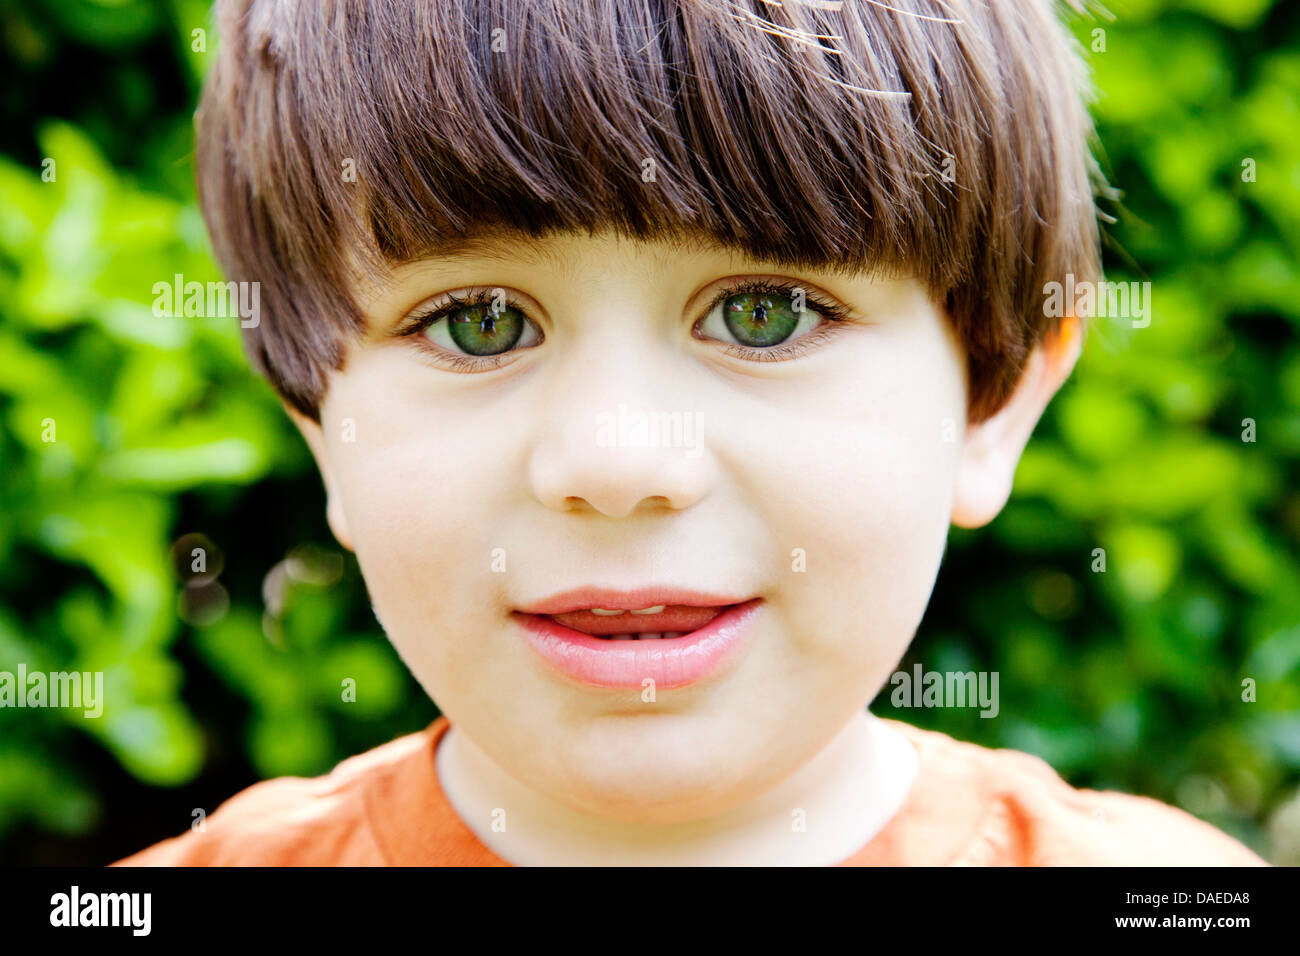 Boy Green Eyes High Resolution Stock Photography And Images Alamy